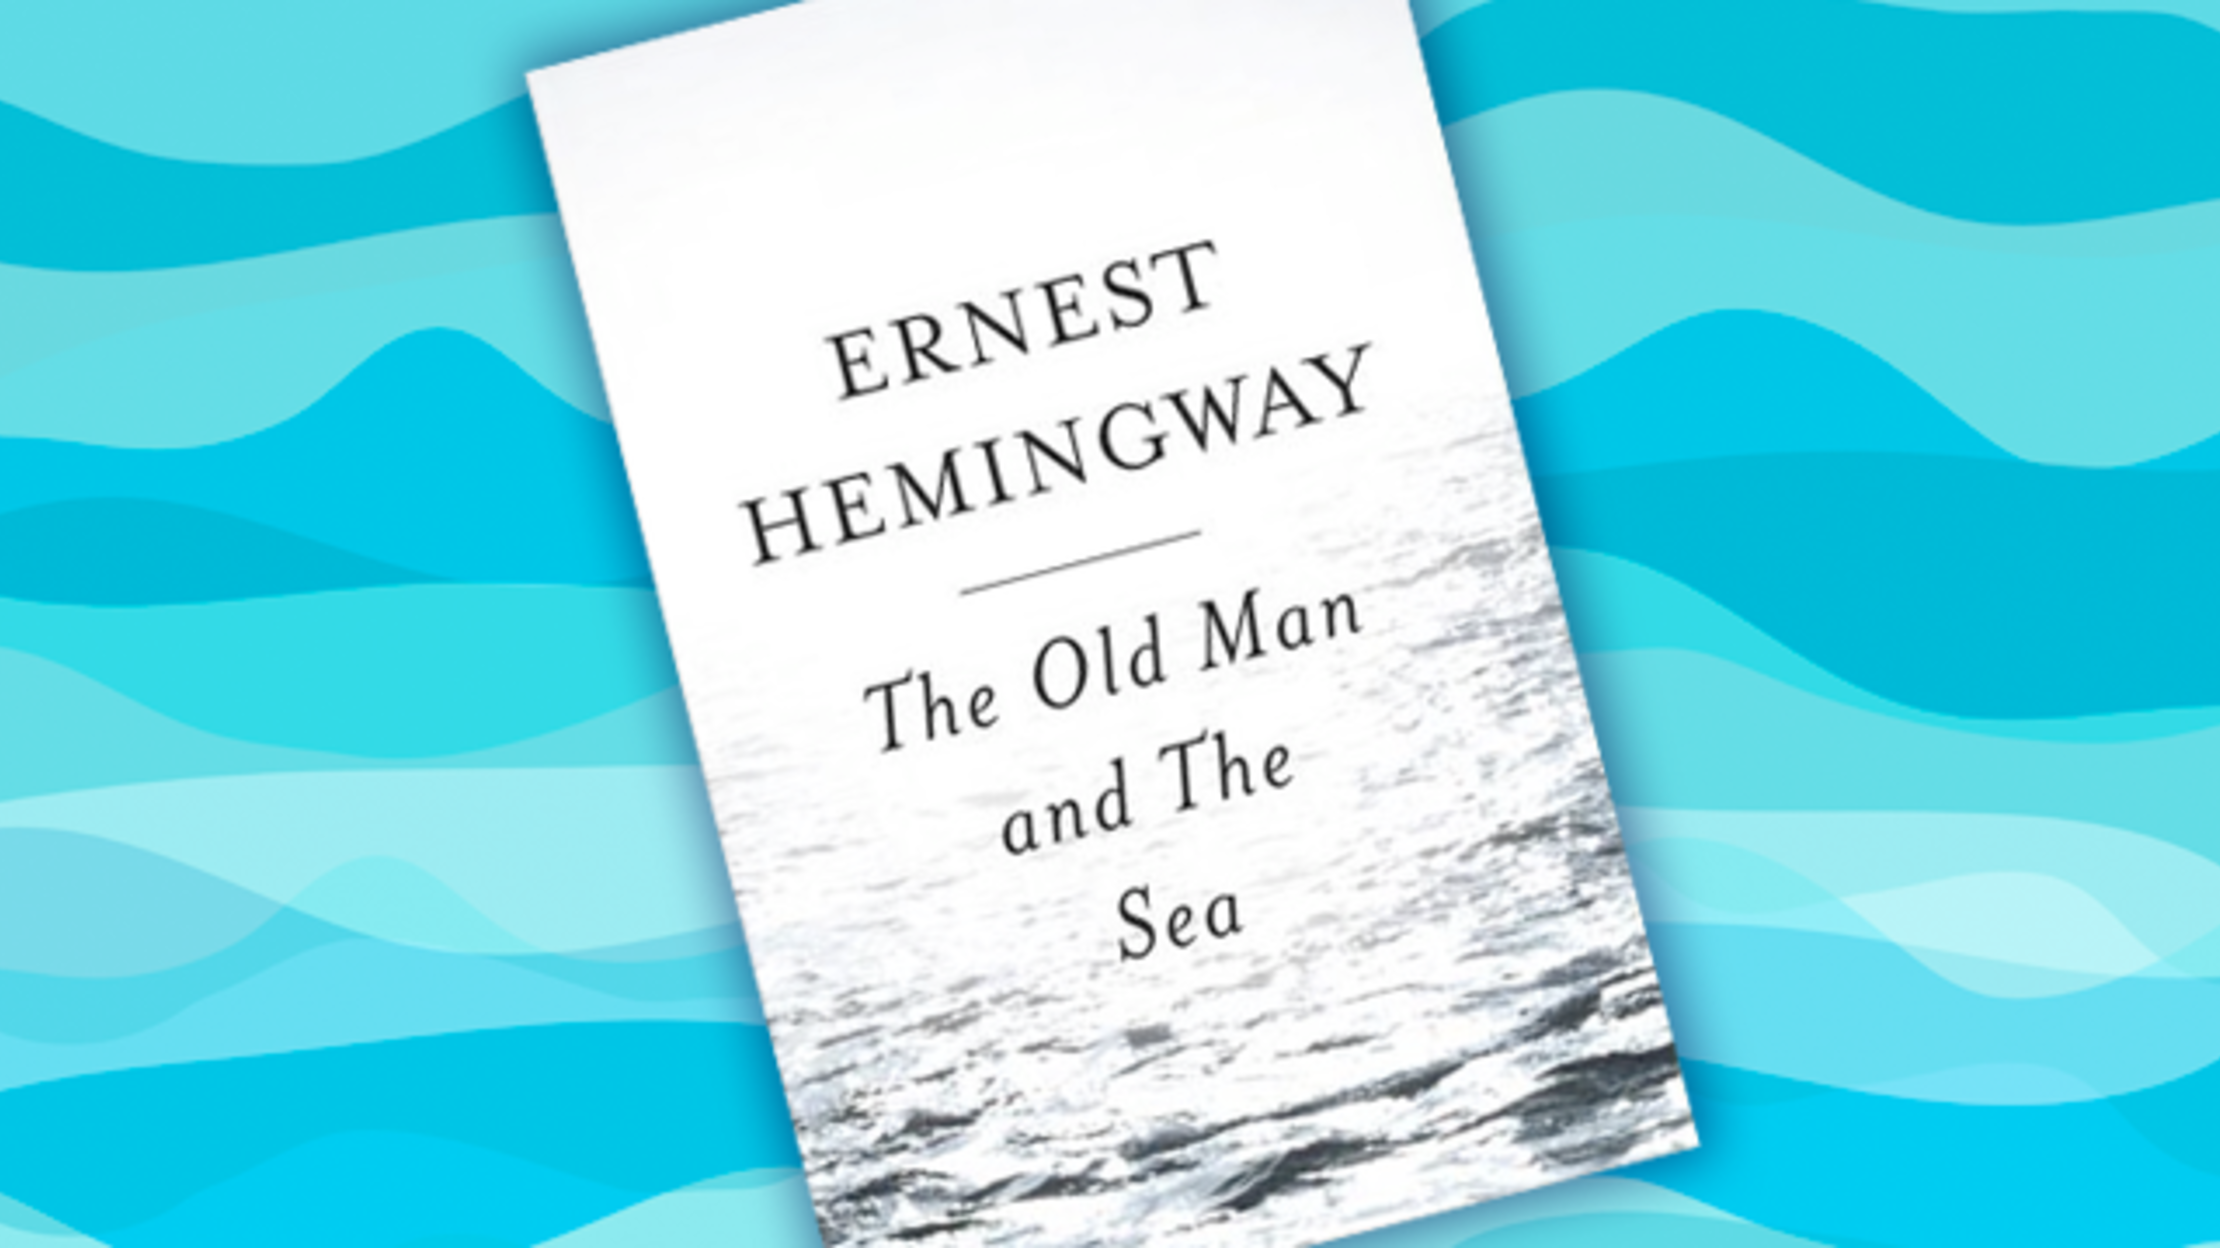 11 Facts About Hemingway's 'The Old Man and the Sea'